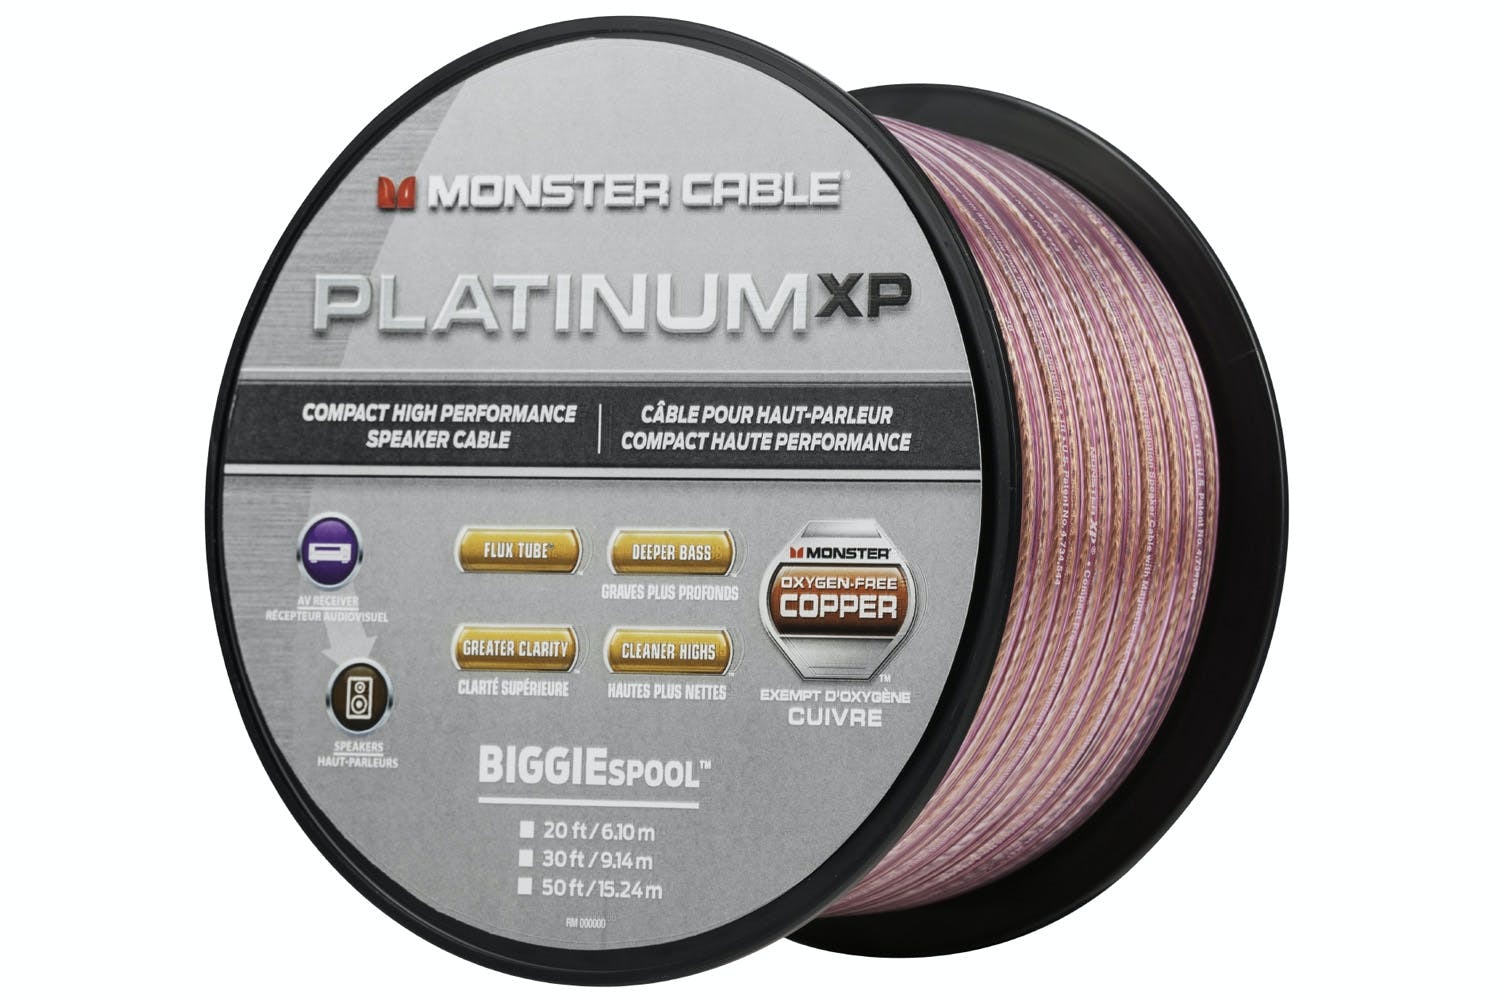 Monster Platinum XP Clear Jacket MKIII 50\' Compact Speaker Cable ...